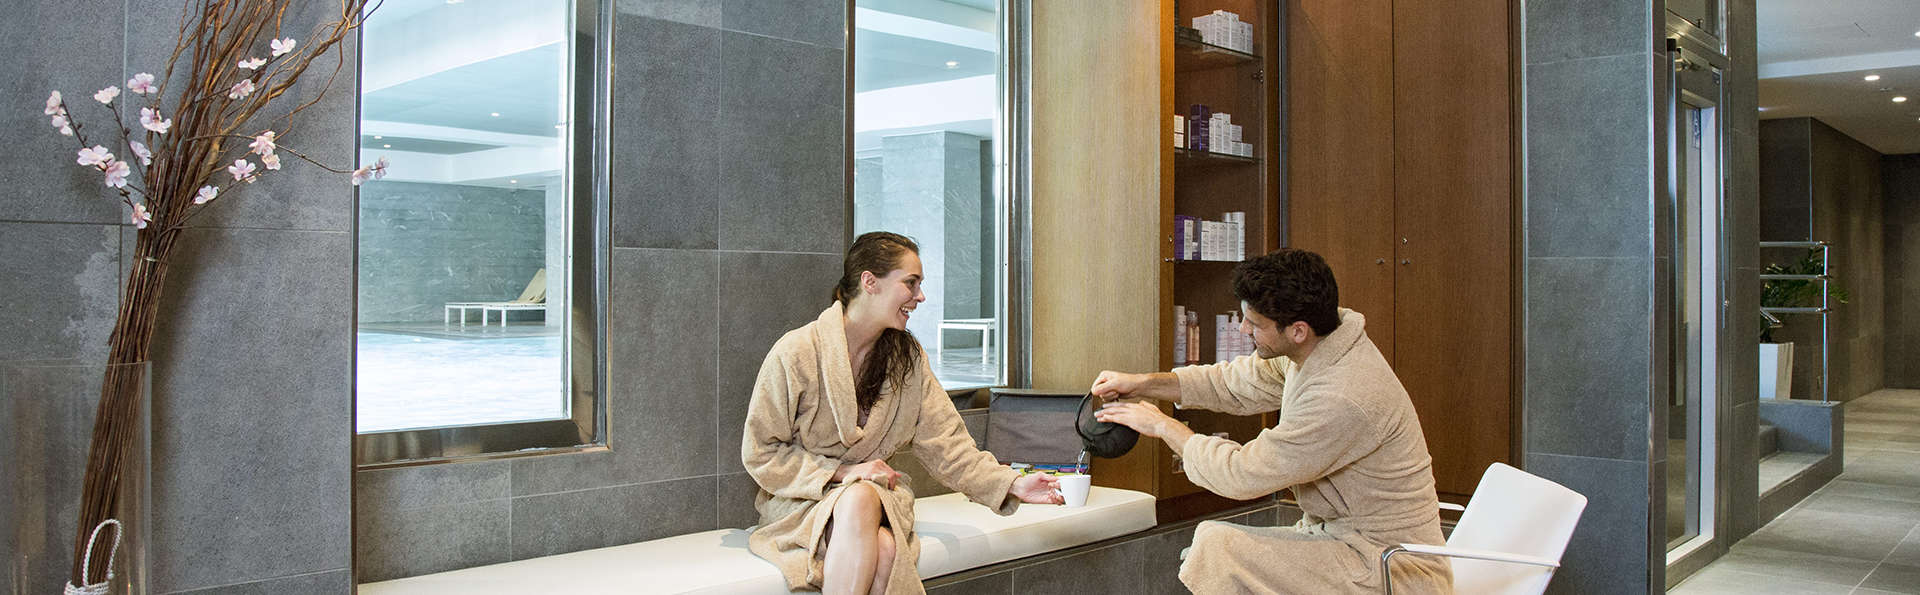 Relais SPA Chessy - EDIT_NEW_Relax.jpg